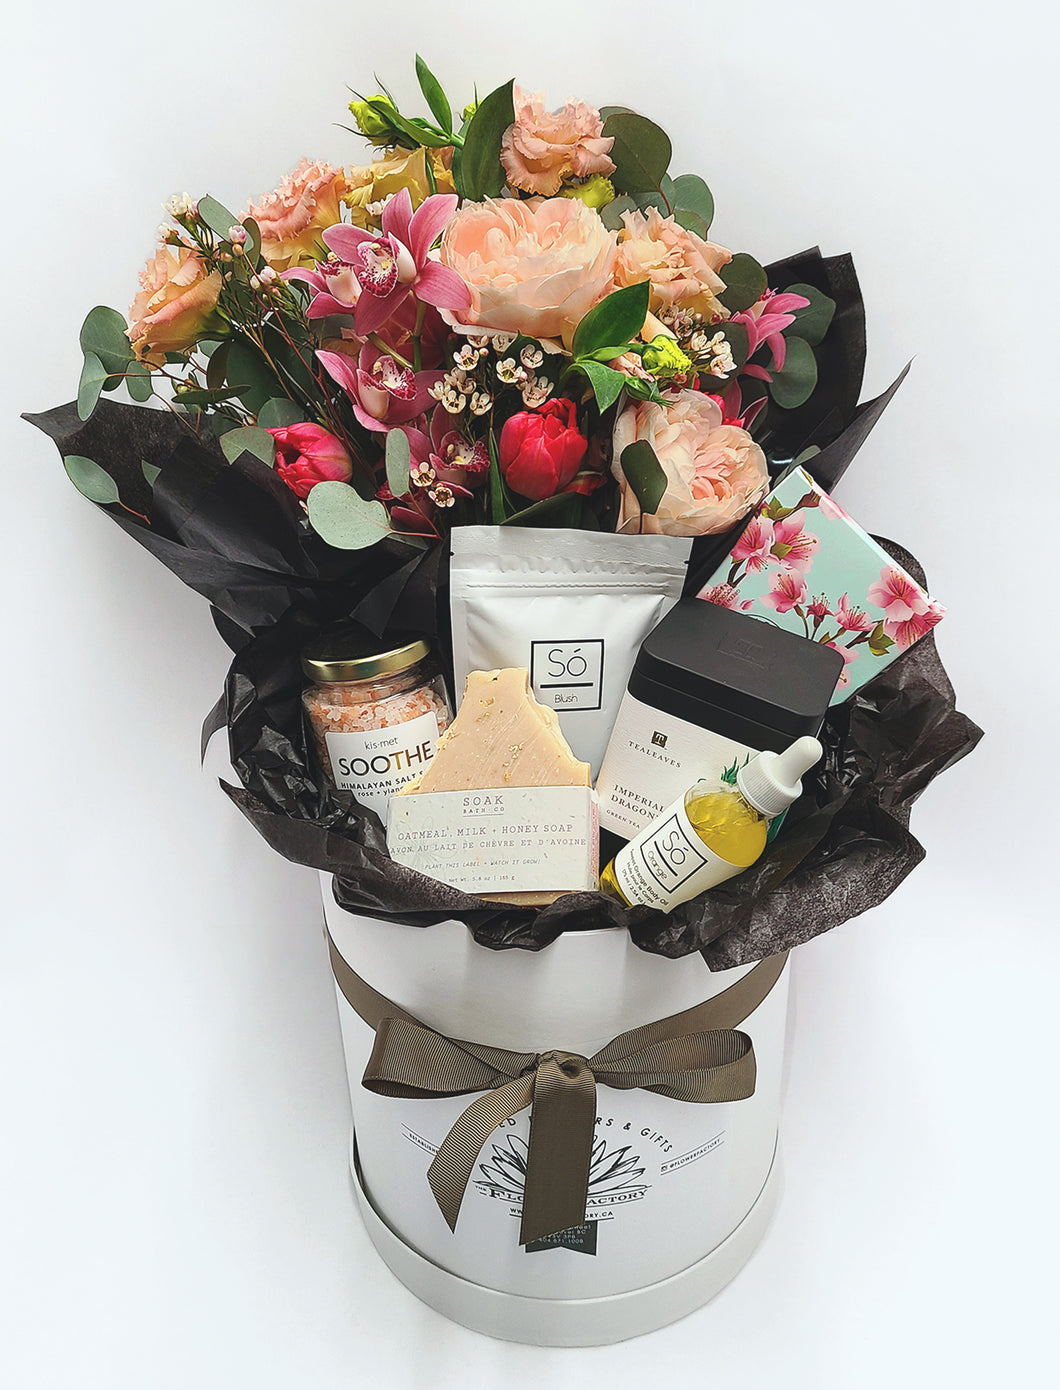 Gift Box of Fresh Flowers and Locally Sourced Gifts